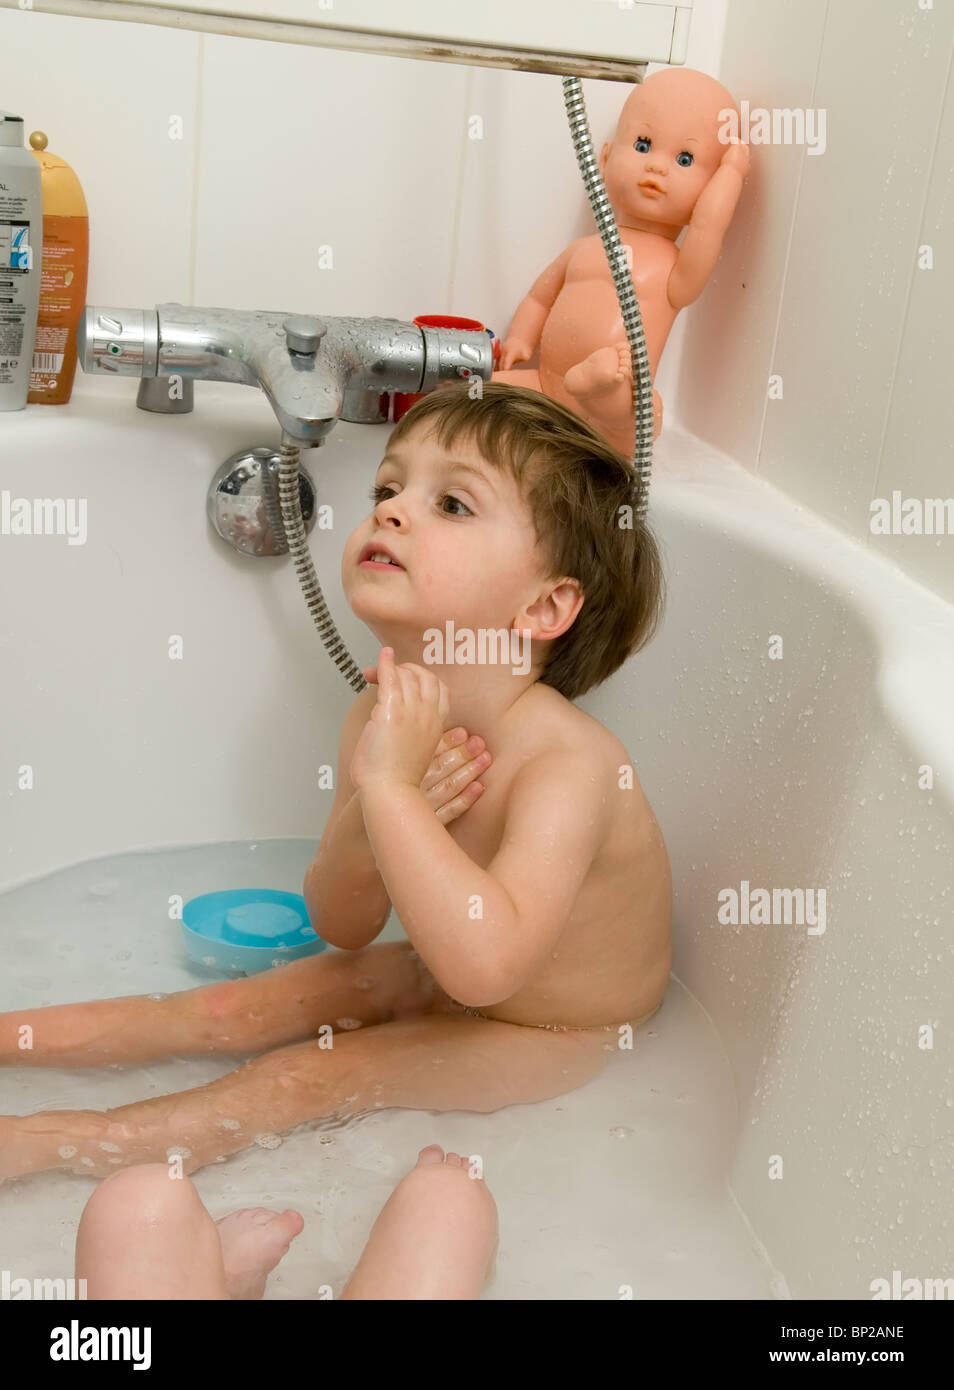 Emile - 2 and 1/2 - preting shaving like his dad - Stock Image